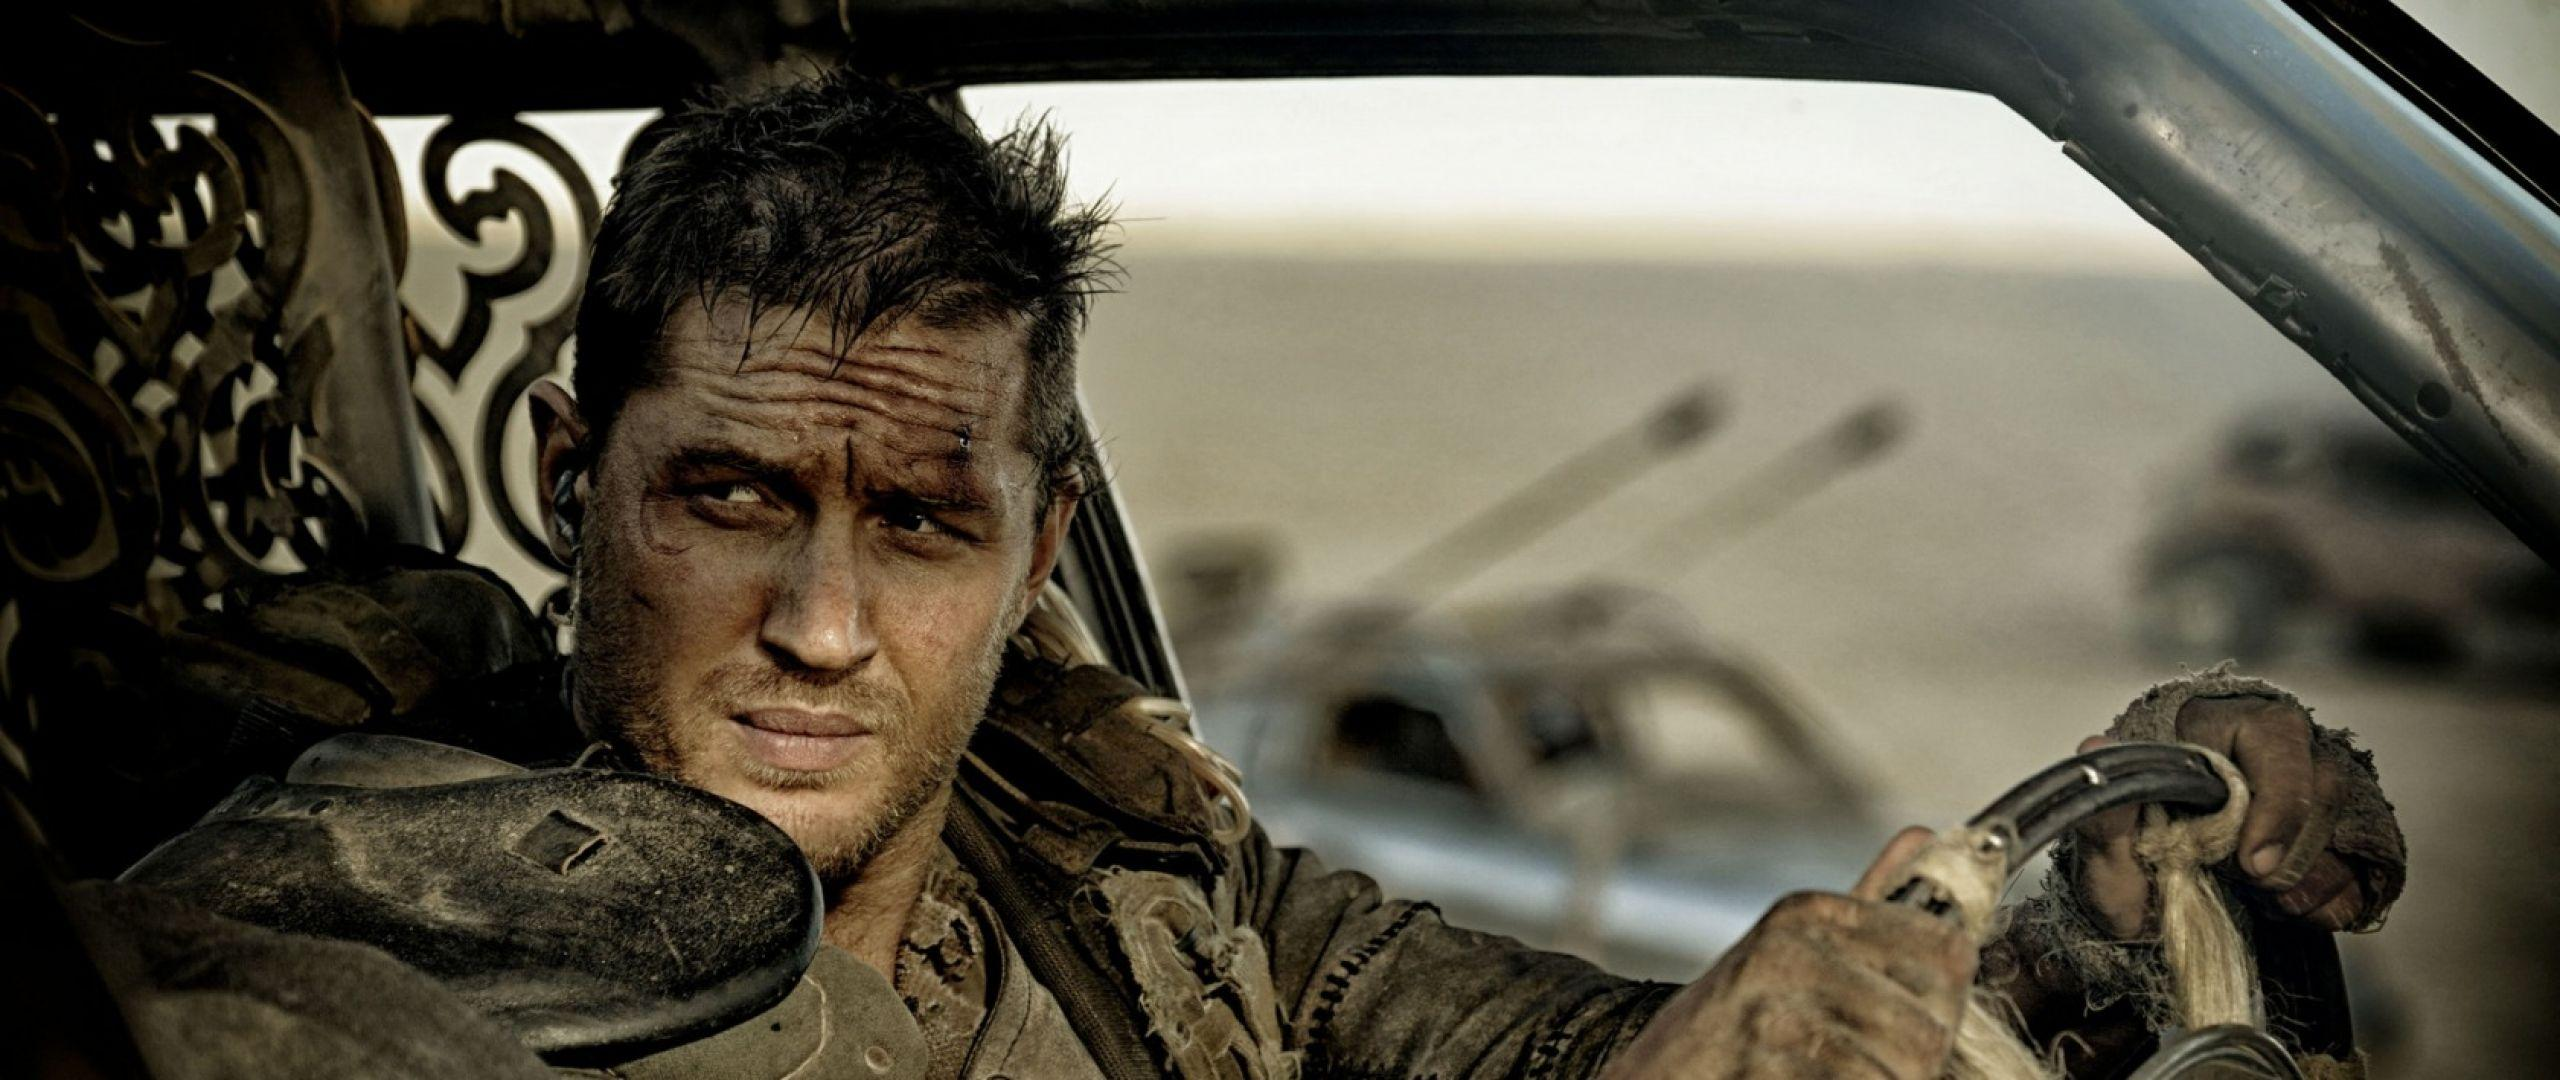 2560x1080 21:9 TV Tom hardy Wallpapers HD, Desktop Backgrounds ...